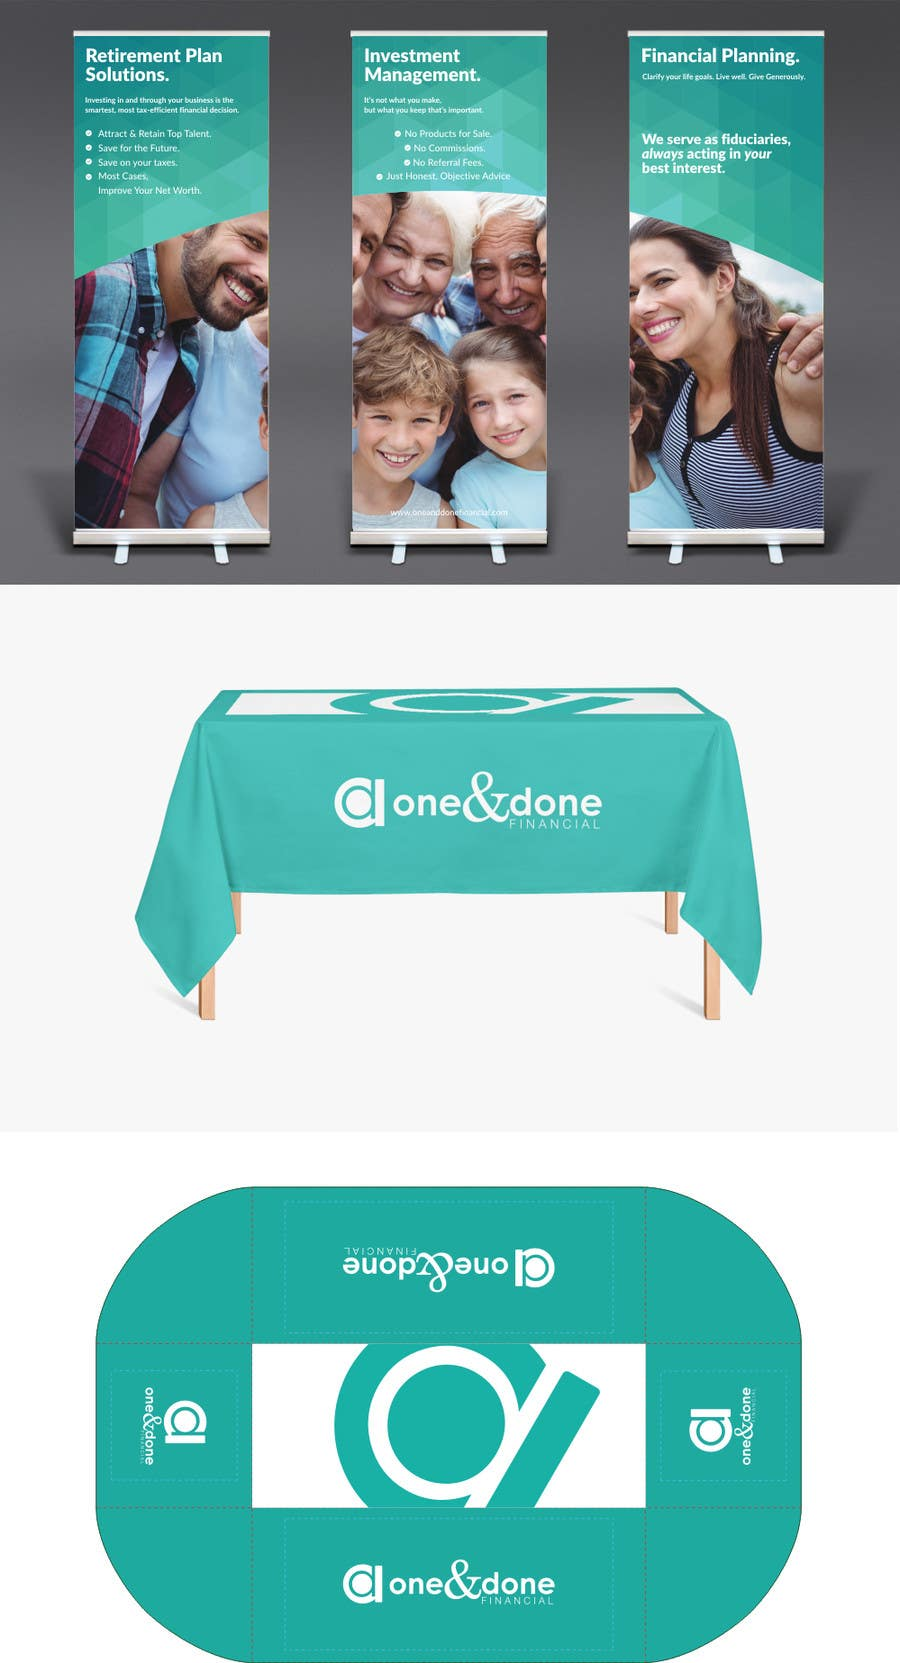 Kilpailutyö #20 kilpailussa Design 3 vertical (roll-up) banners and tablecloth for expo booth